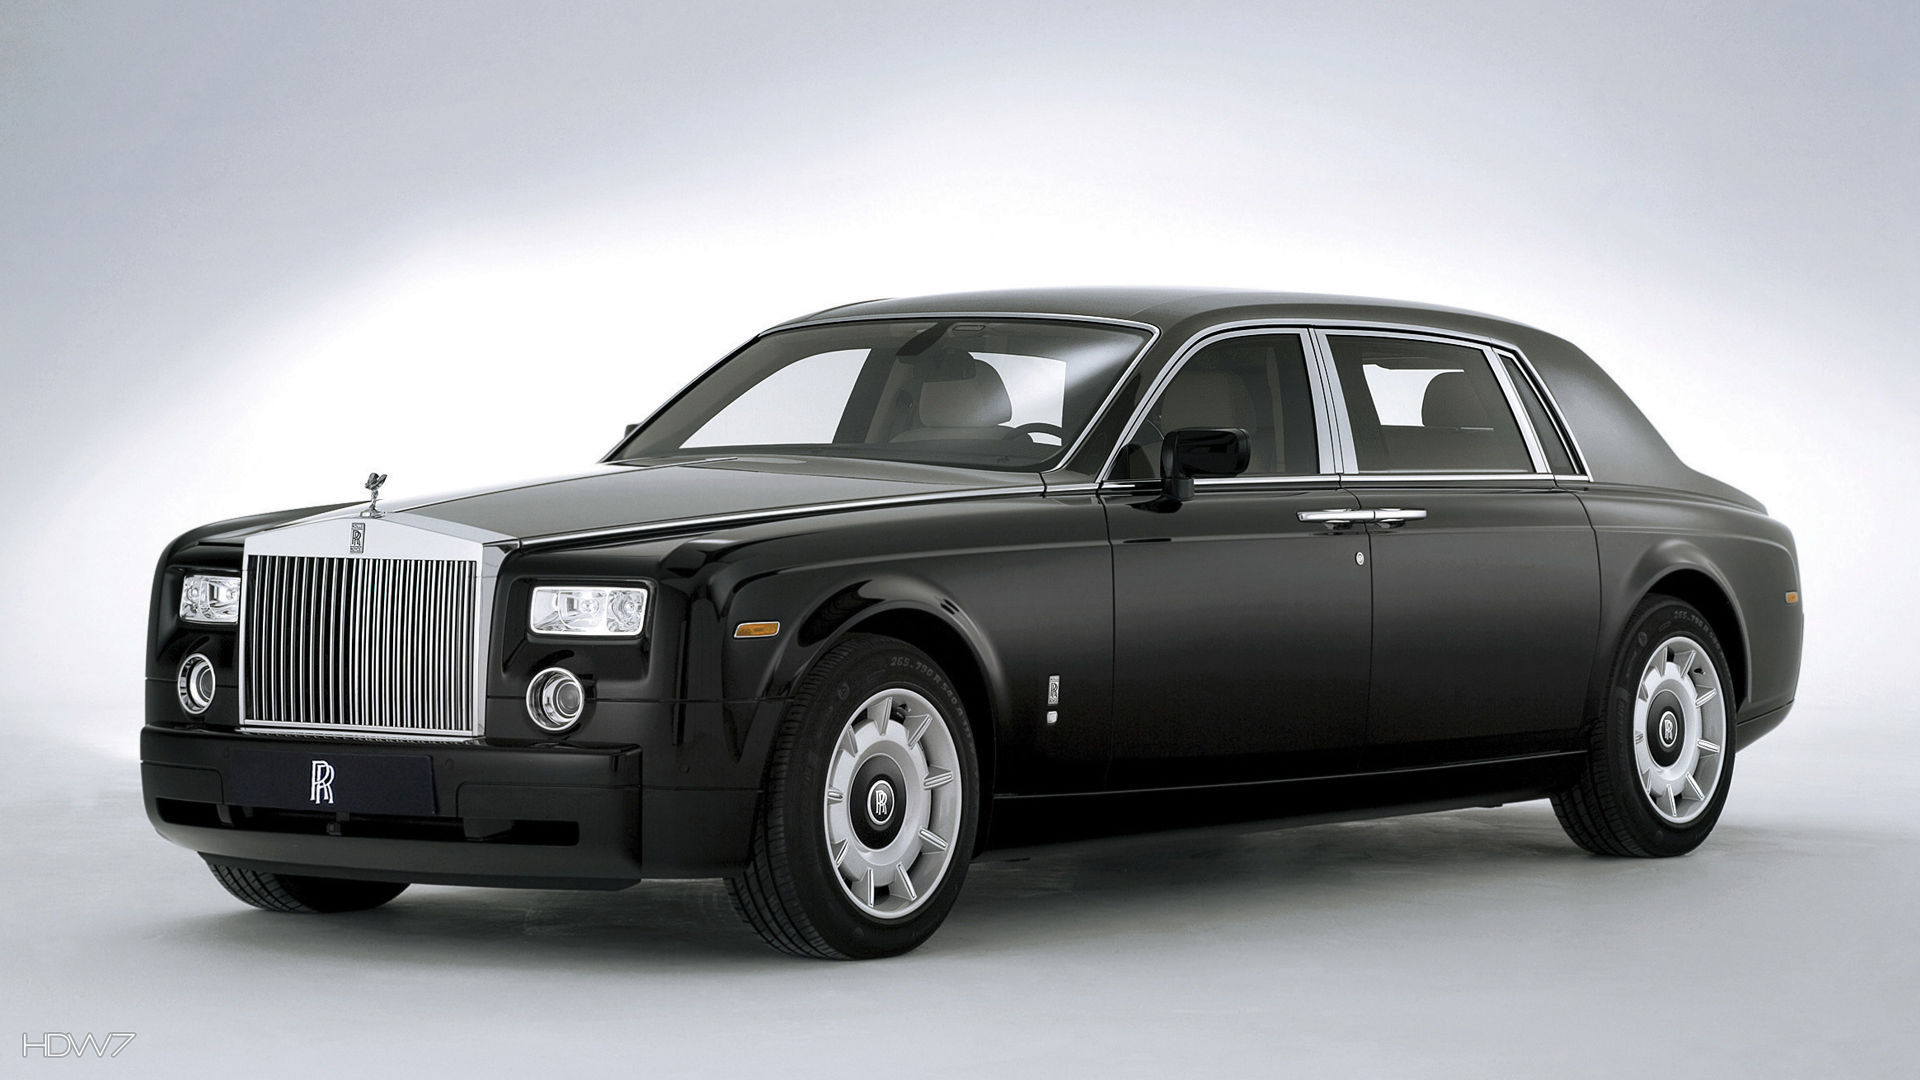 rolls royce phantom extended wheelbase 2005 car hd. Black Bedroom Furniture Sets. Home Design Ideas